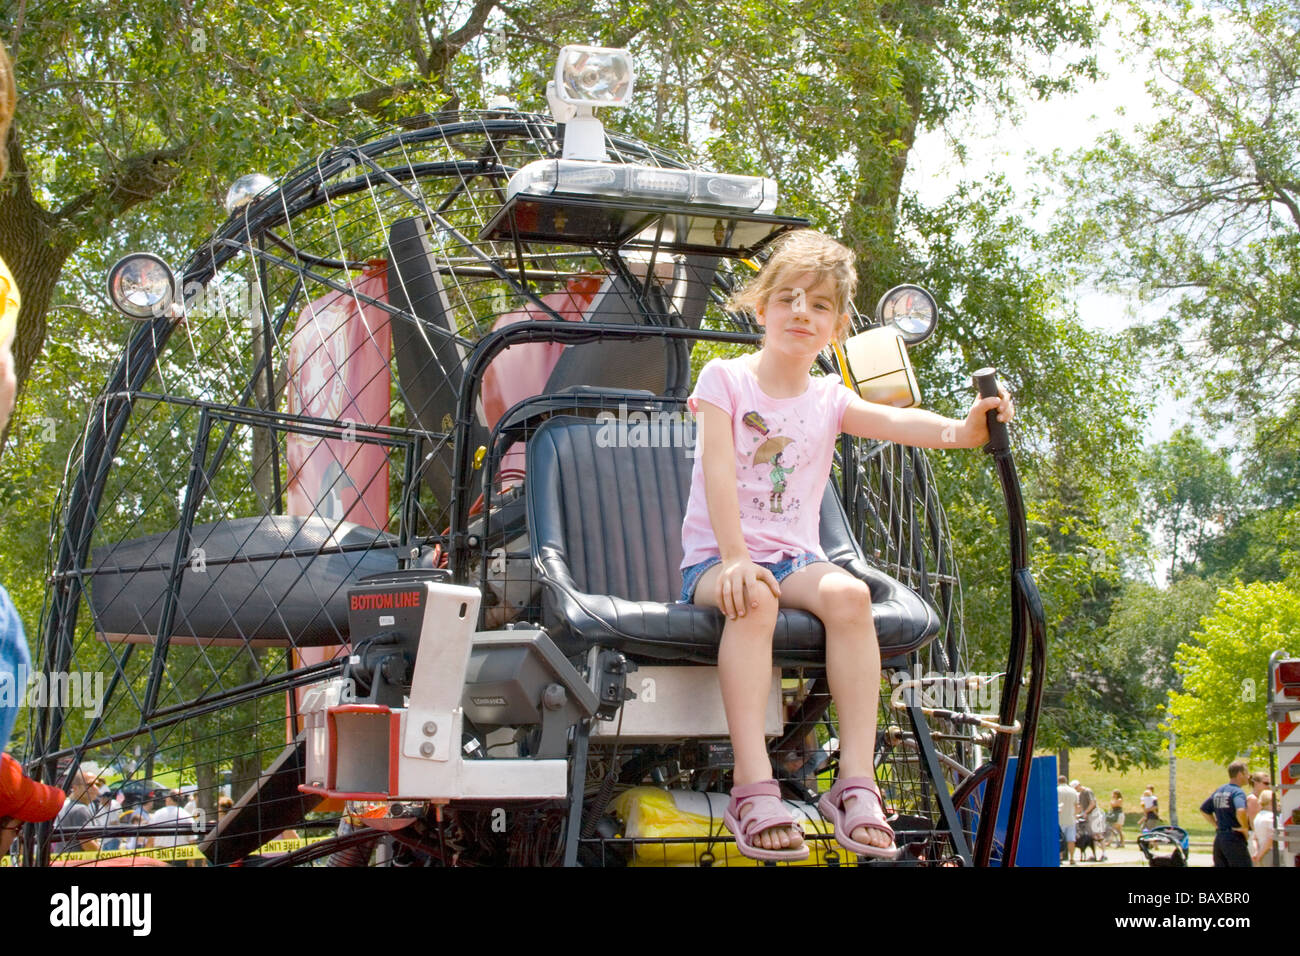 Confident young girl age 6 in drivers seat of fire dept water rescue airboat. Aquatennial Beach Bash Minneapolis - Stock Image